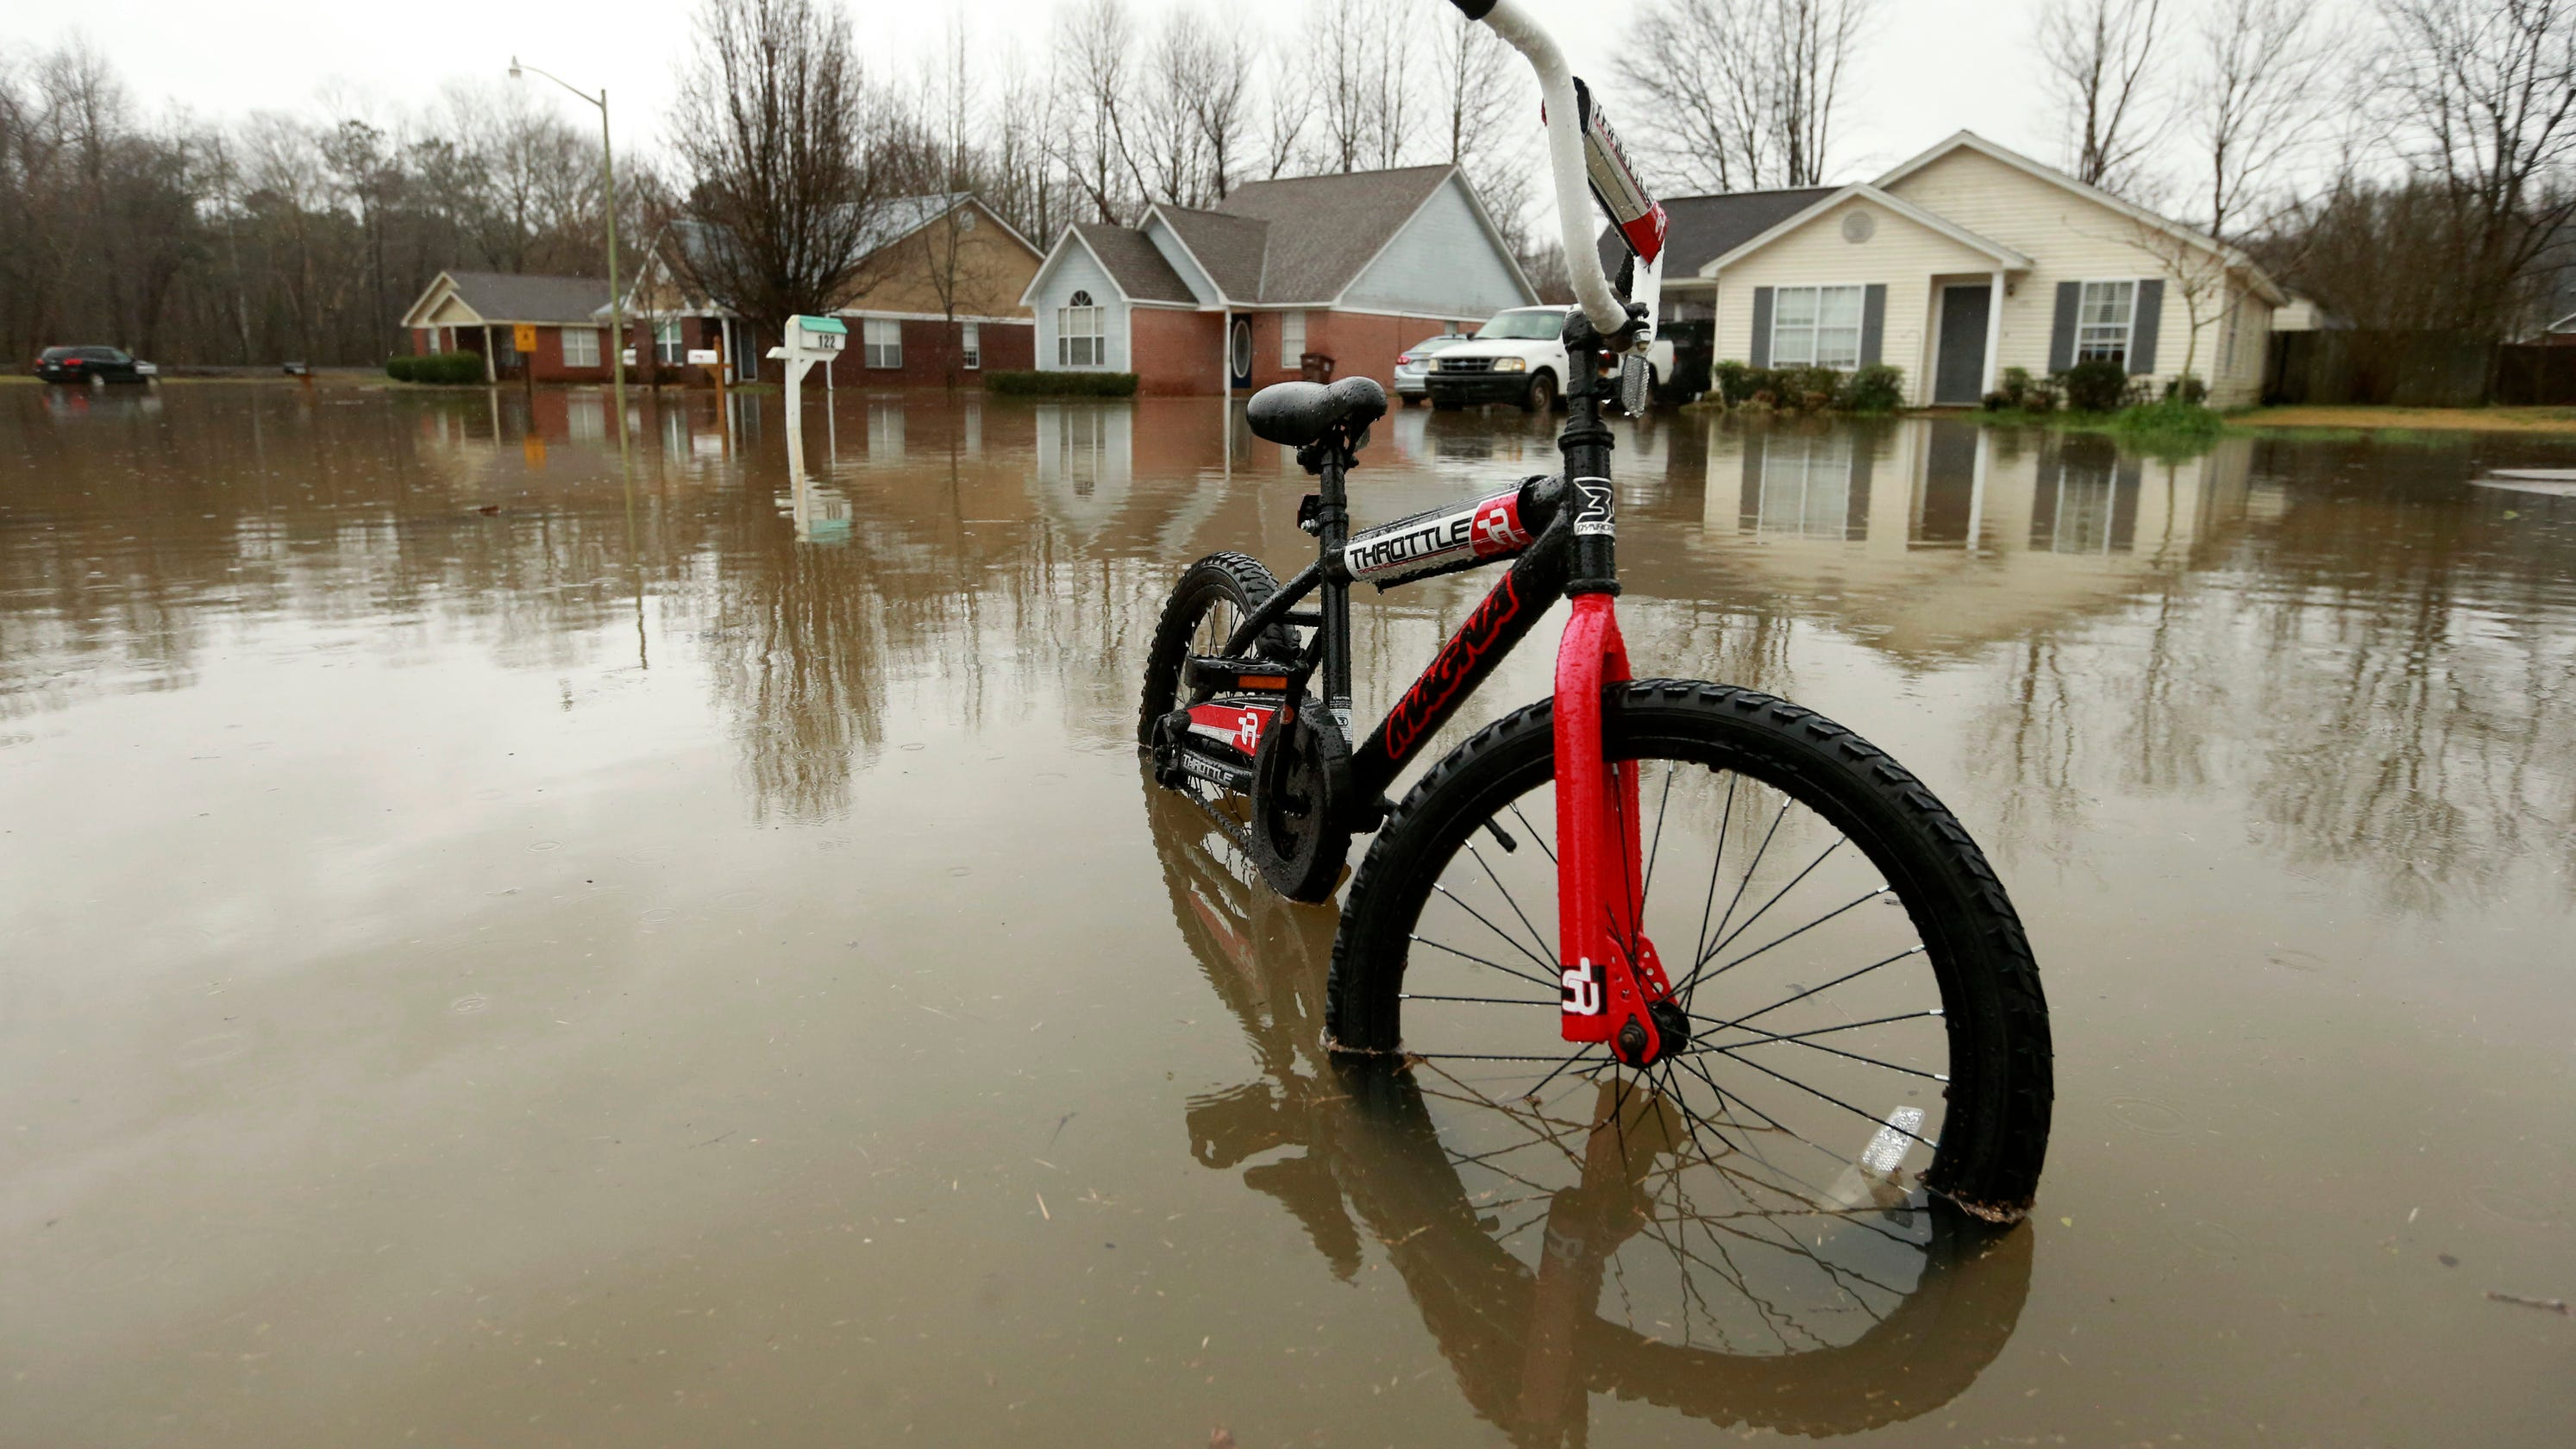 Flooding in north Mississippi: Live coverage